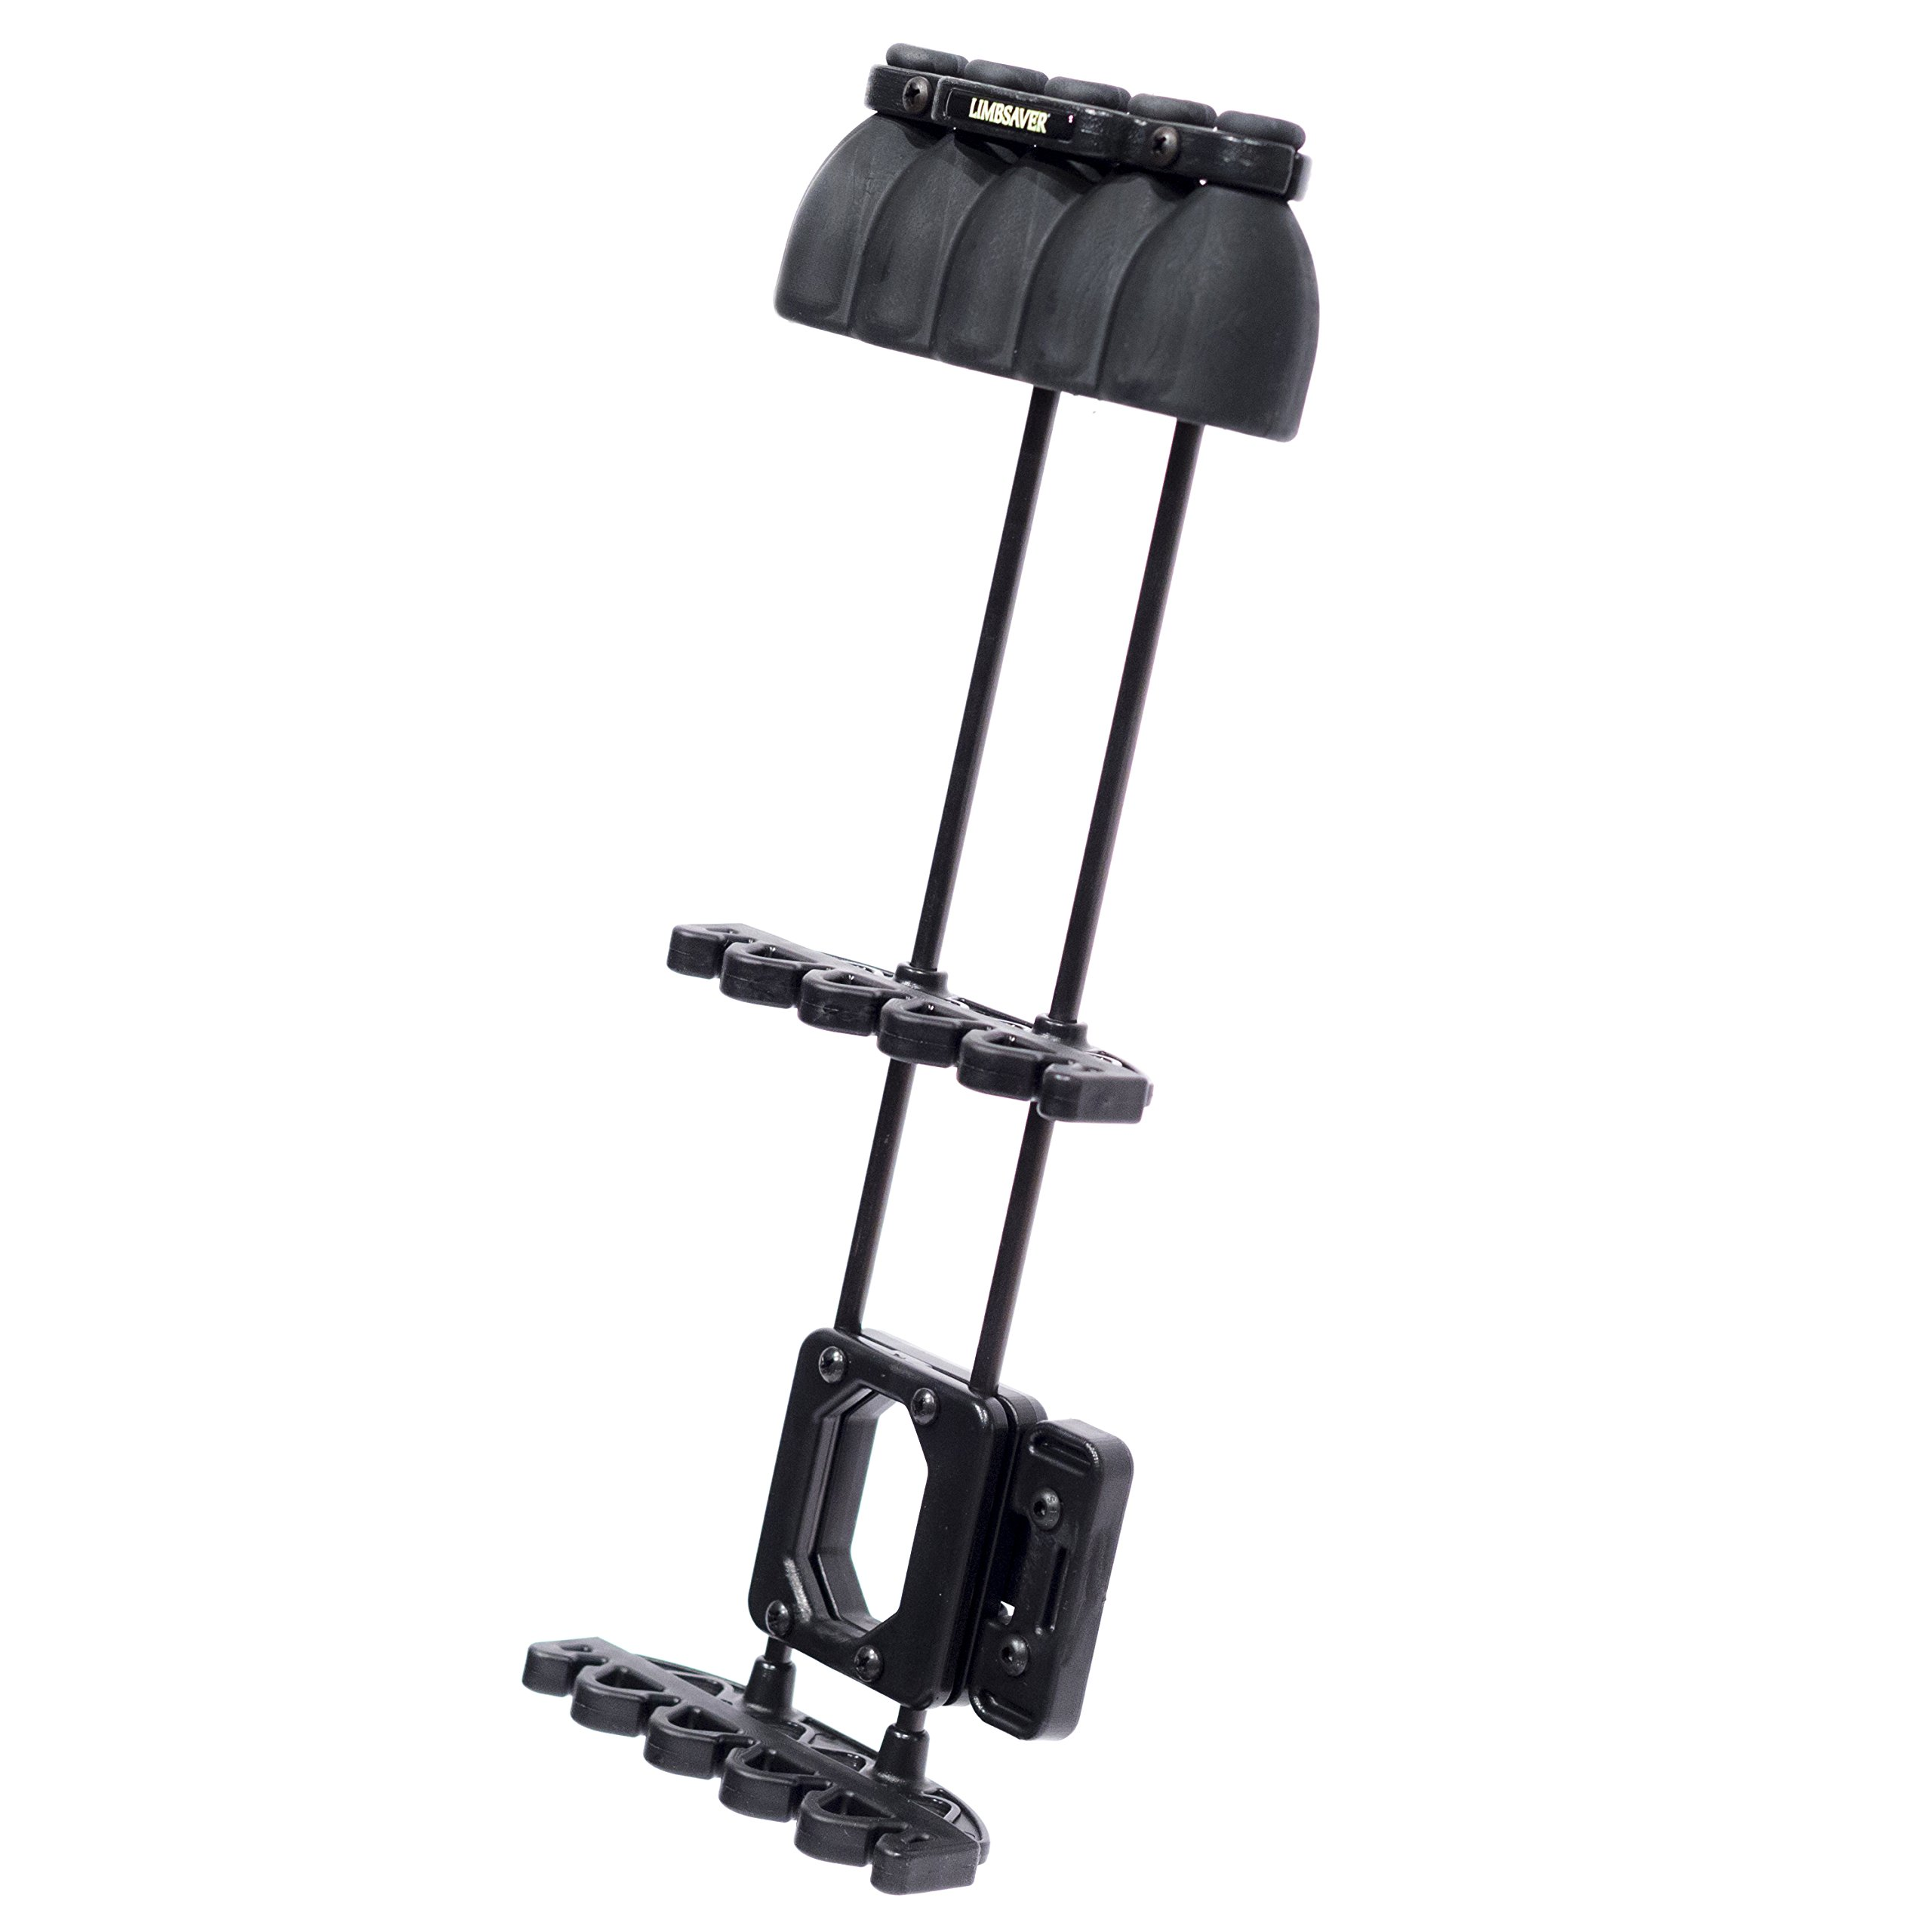 LimbSaver Silent Quiver for Bow Hunting, One Piece, Black